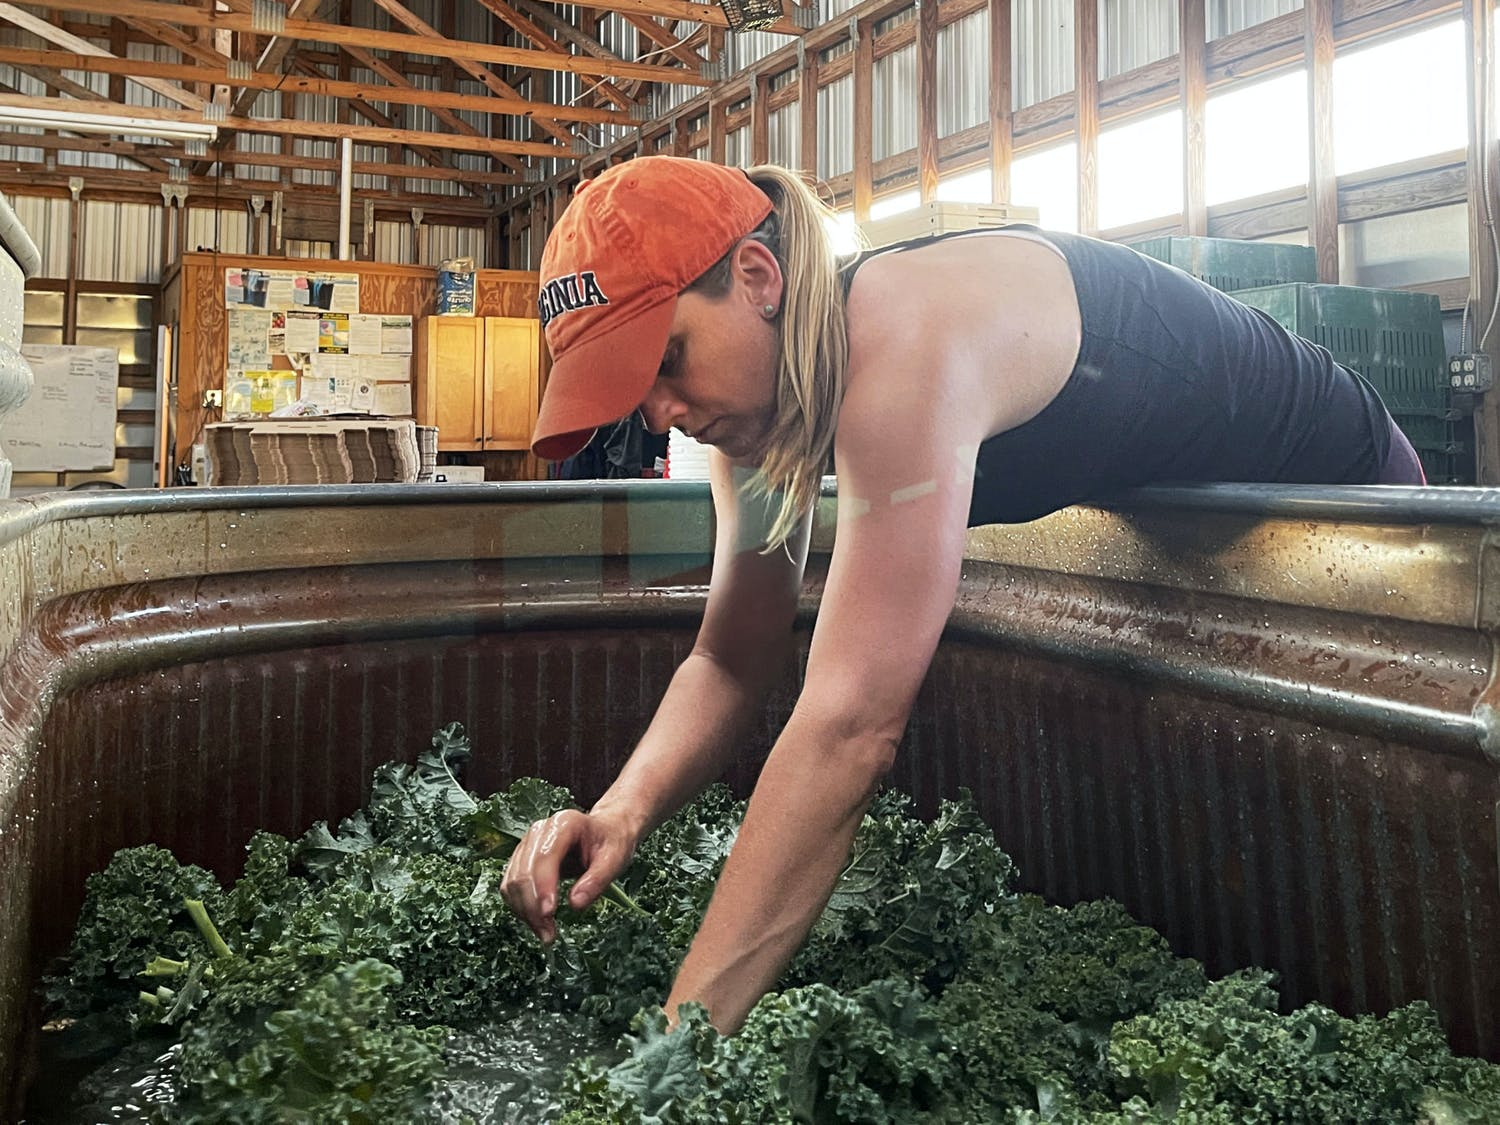 UF professor Hannah Mathews, 43, washes kale after volunteering to help harvest vegetables at Siembra Farm in Gainesville on Tuesday, May 4, 2021. She was among many volunteers who worked to harvest extra vegetables to give to local families in East Gainesville. (Photo by Joelle Wittig)